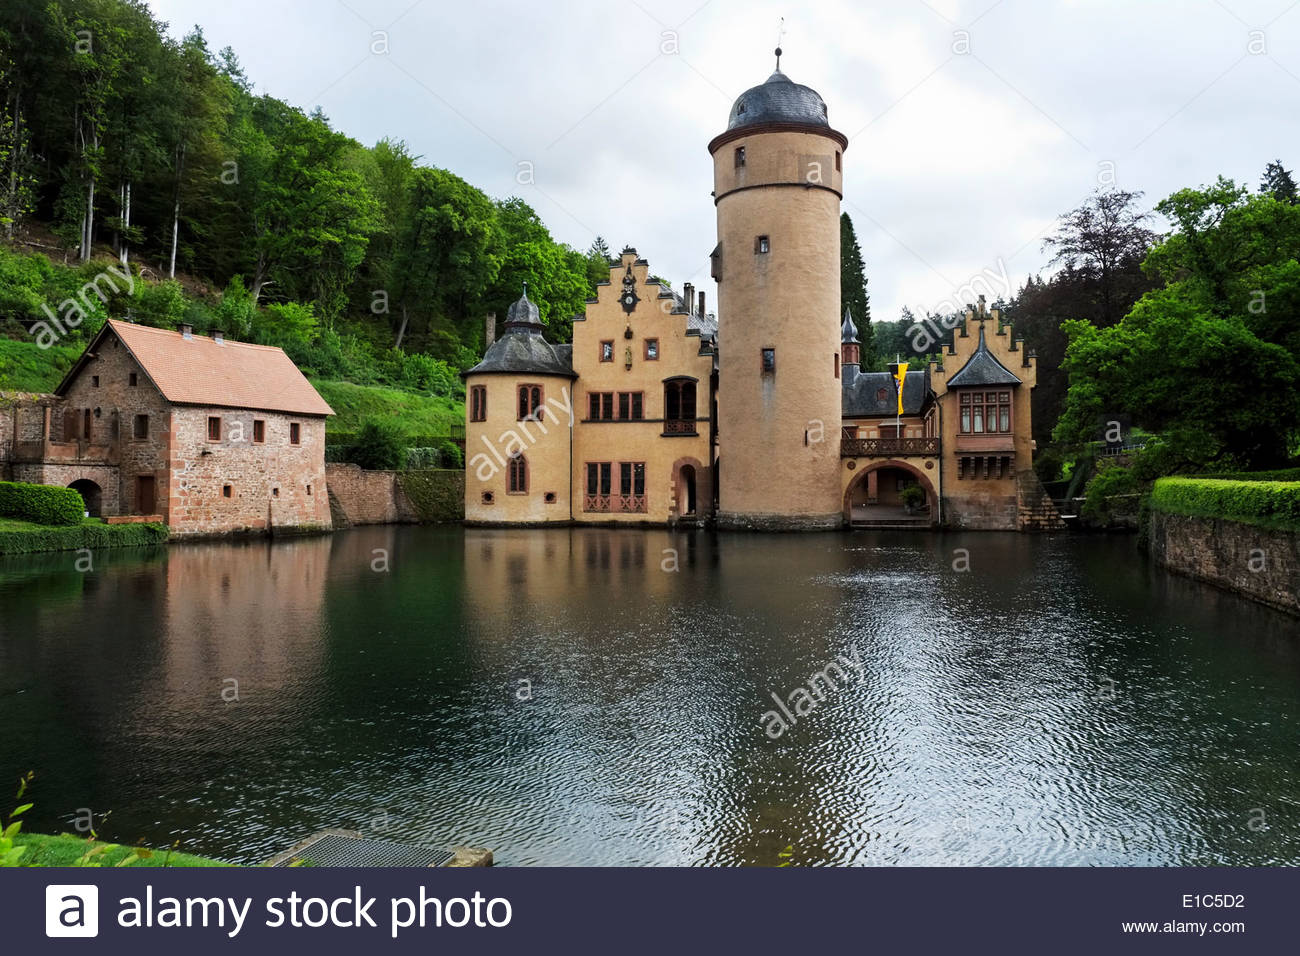 The moat of Mespelbrunn Castle has a large pond which is stocked with trout. Stock Photo